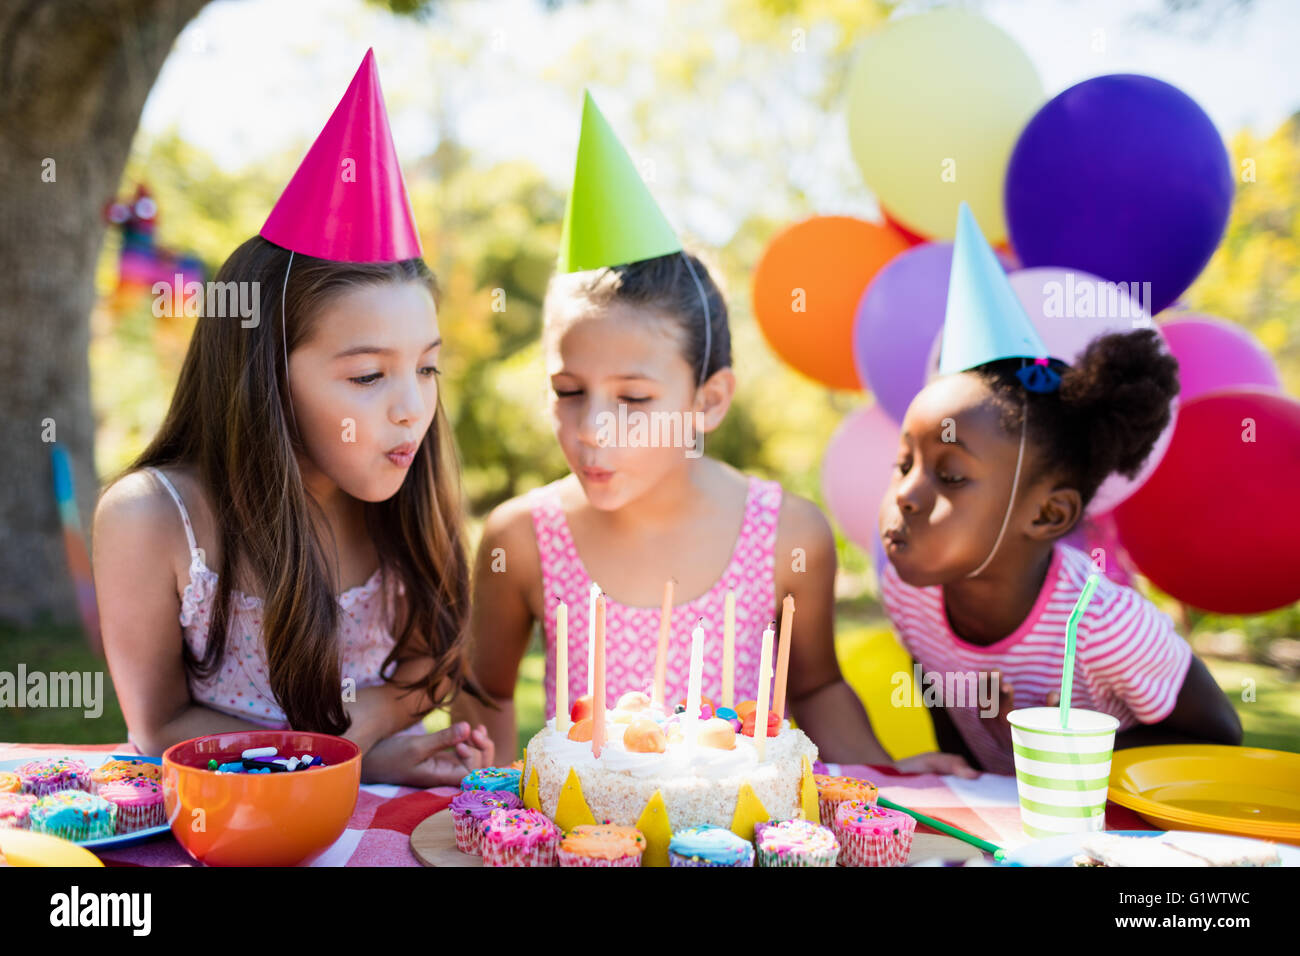 Portrait of cute girls blowing on candle during a birthday party - Stock Image